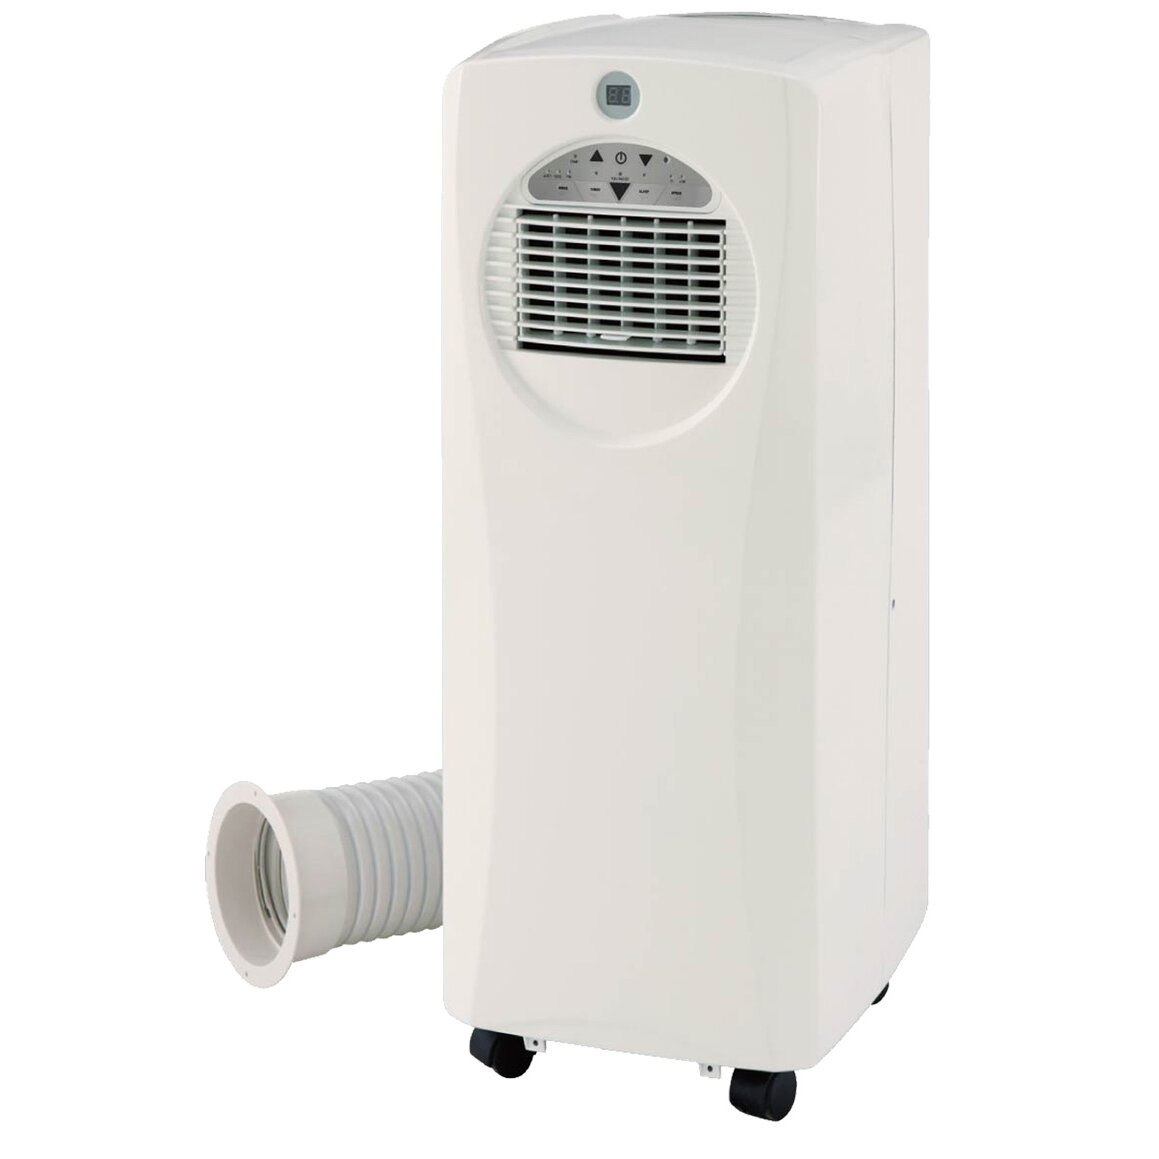 10 000 BTU Portable Air Conditioner with Heater by Sunpentown #70695B